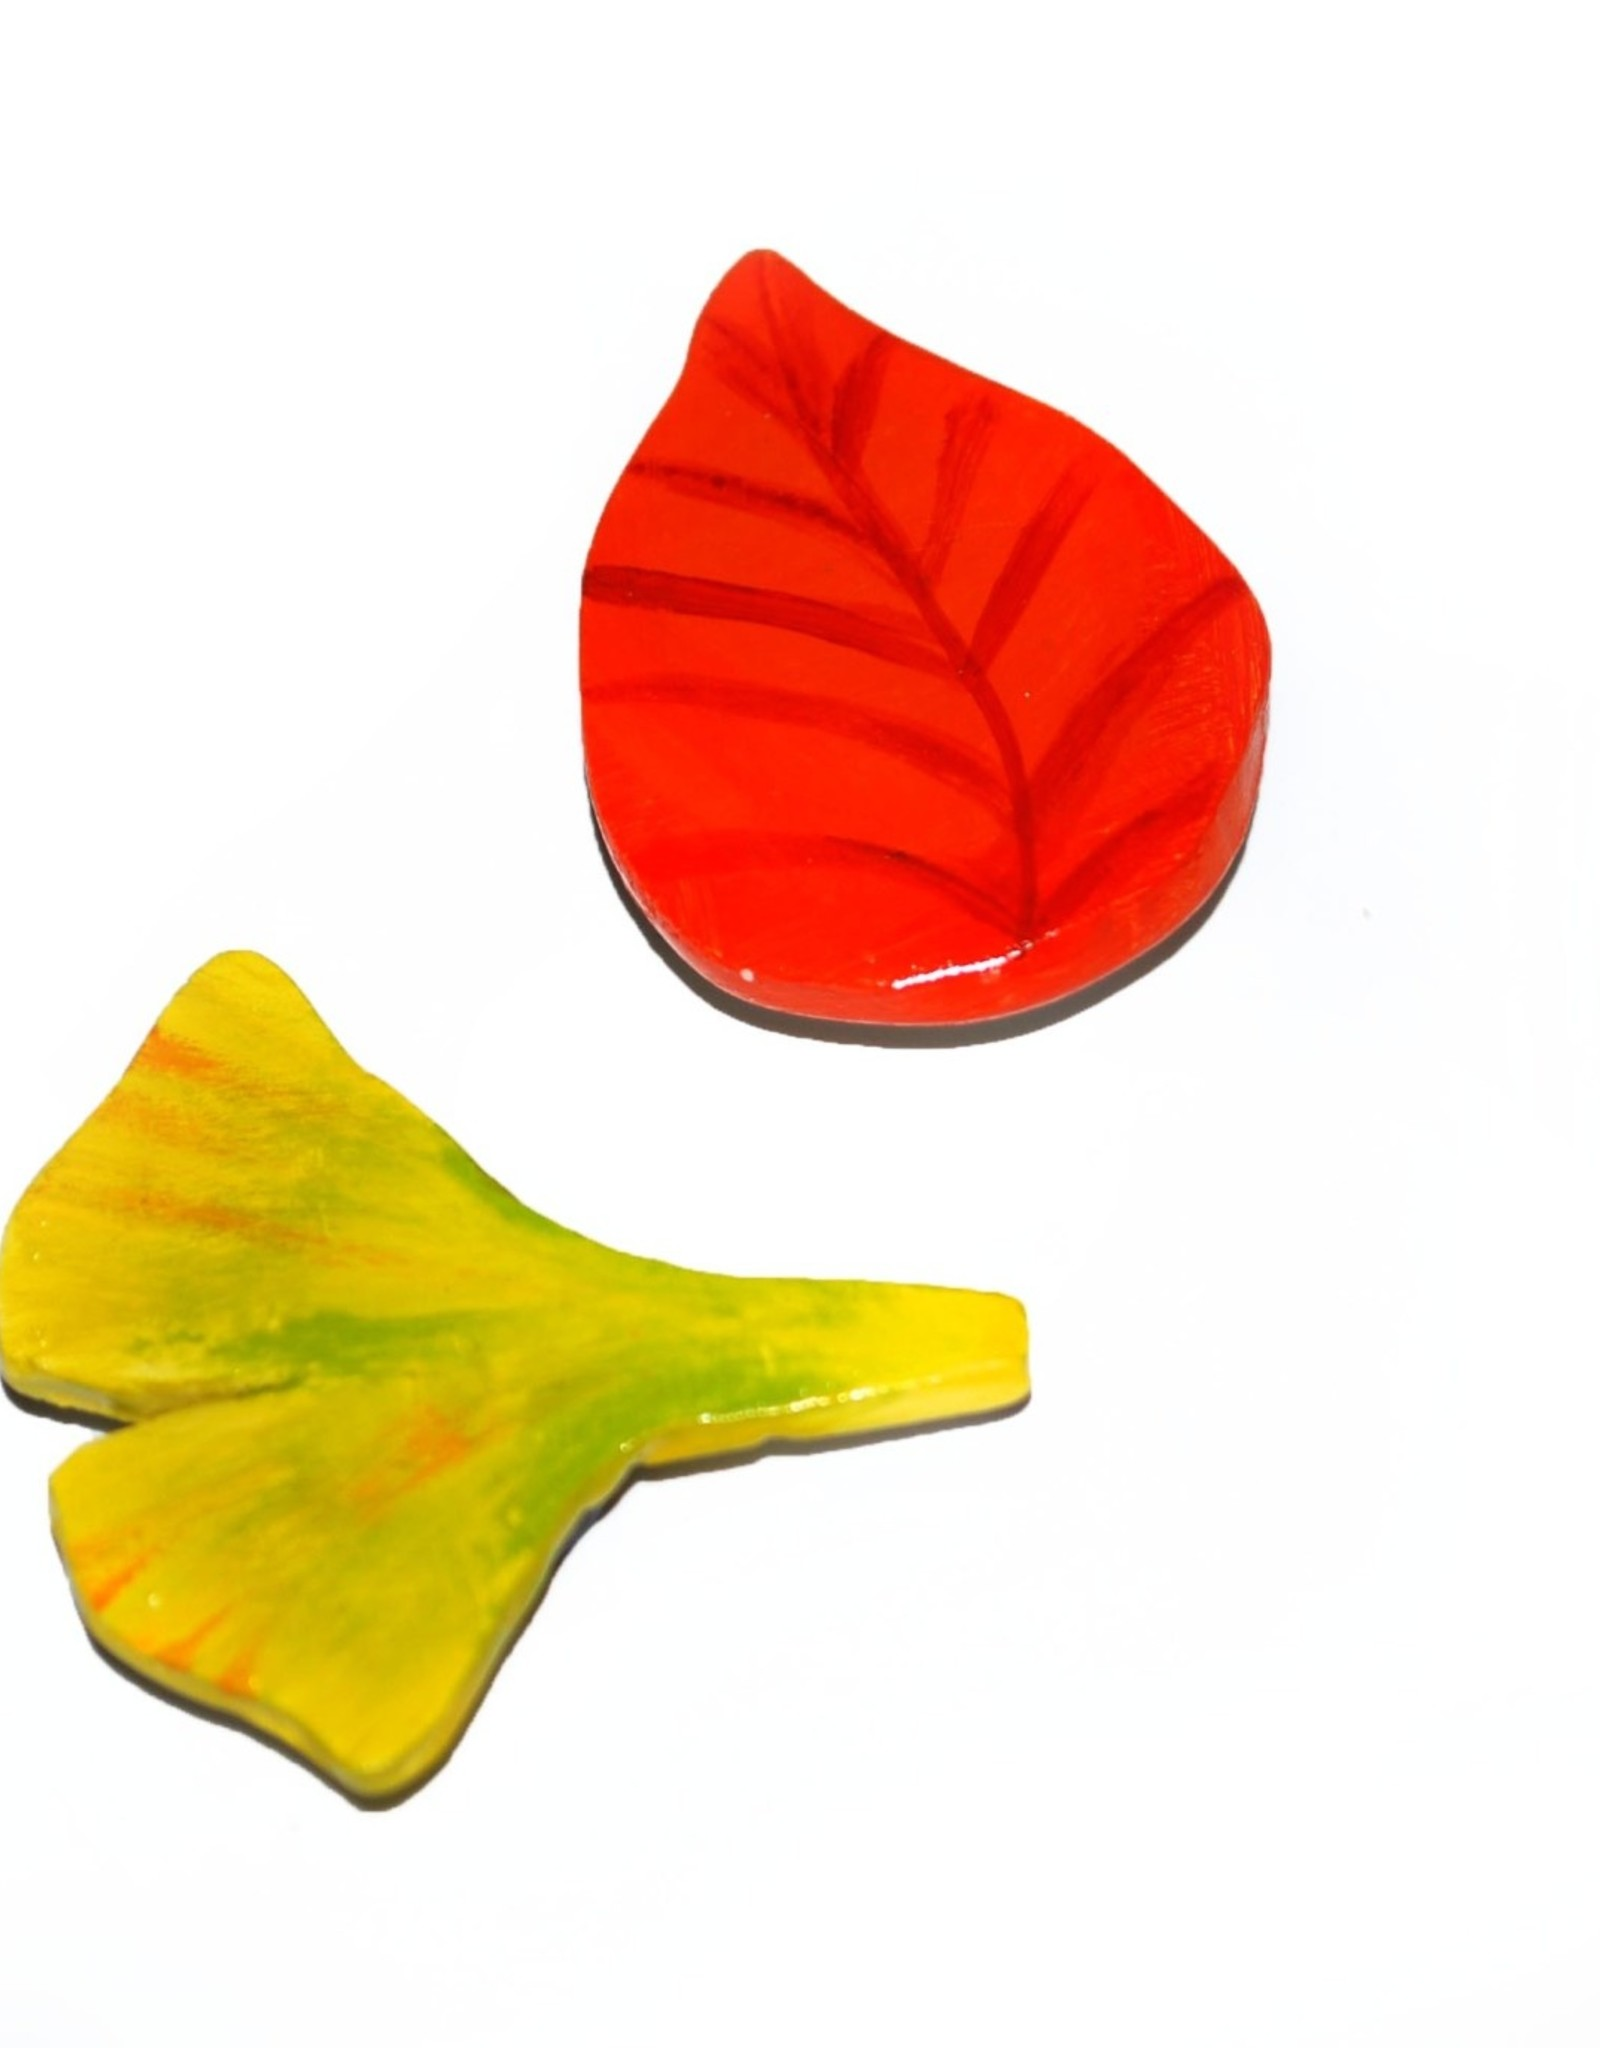 Alli Davis Fall and Ginko Leaf Magnet Set, Alli Davis